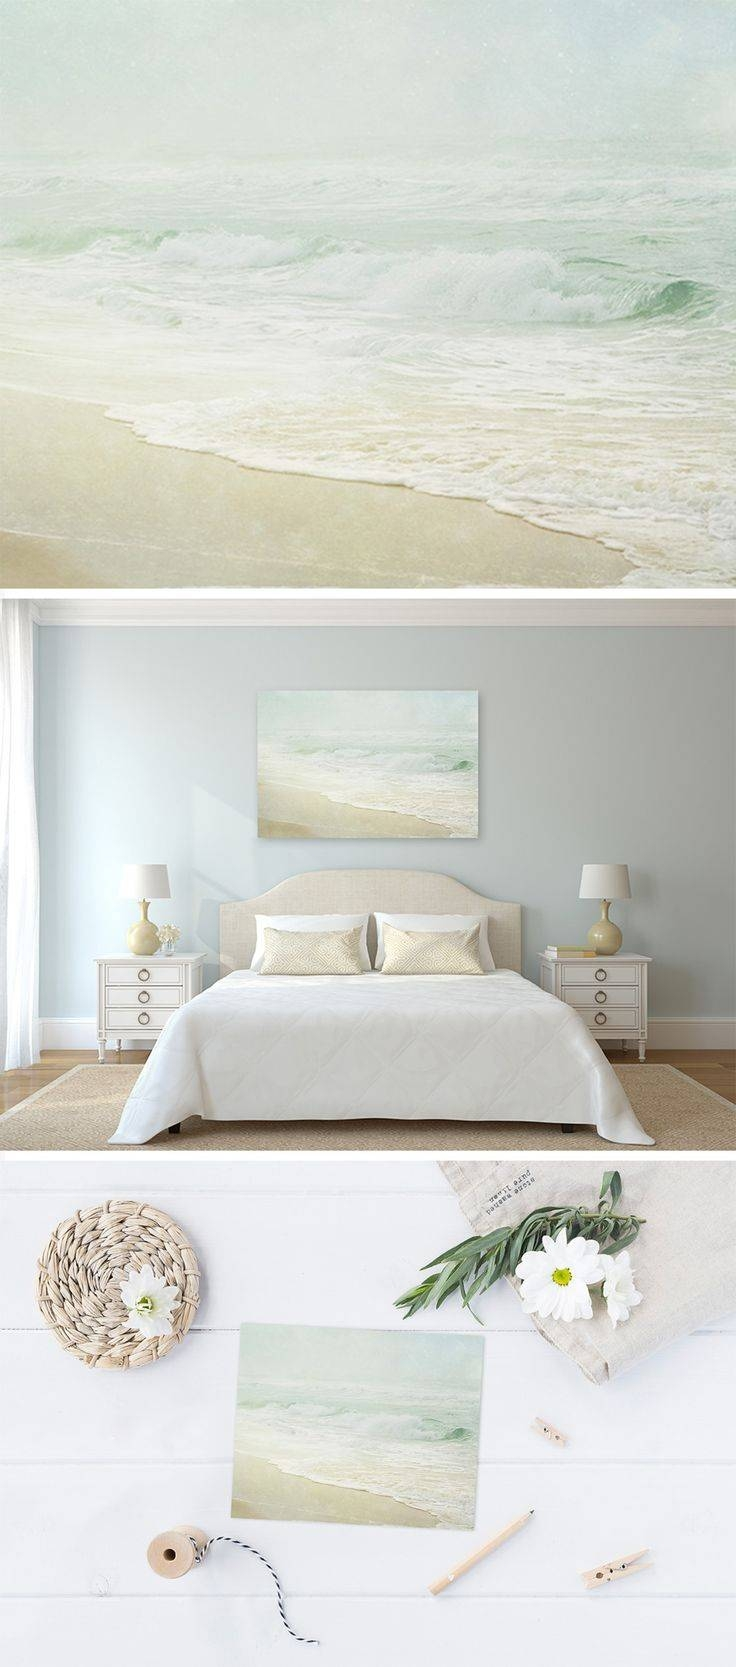 Chic Coastal Wall Art Canvas Crate Barrel Australia Ideas Decor Uk For 2017 Coastal Wall Art Decor (View 8 of 20)